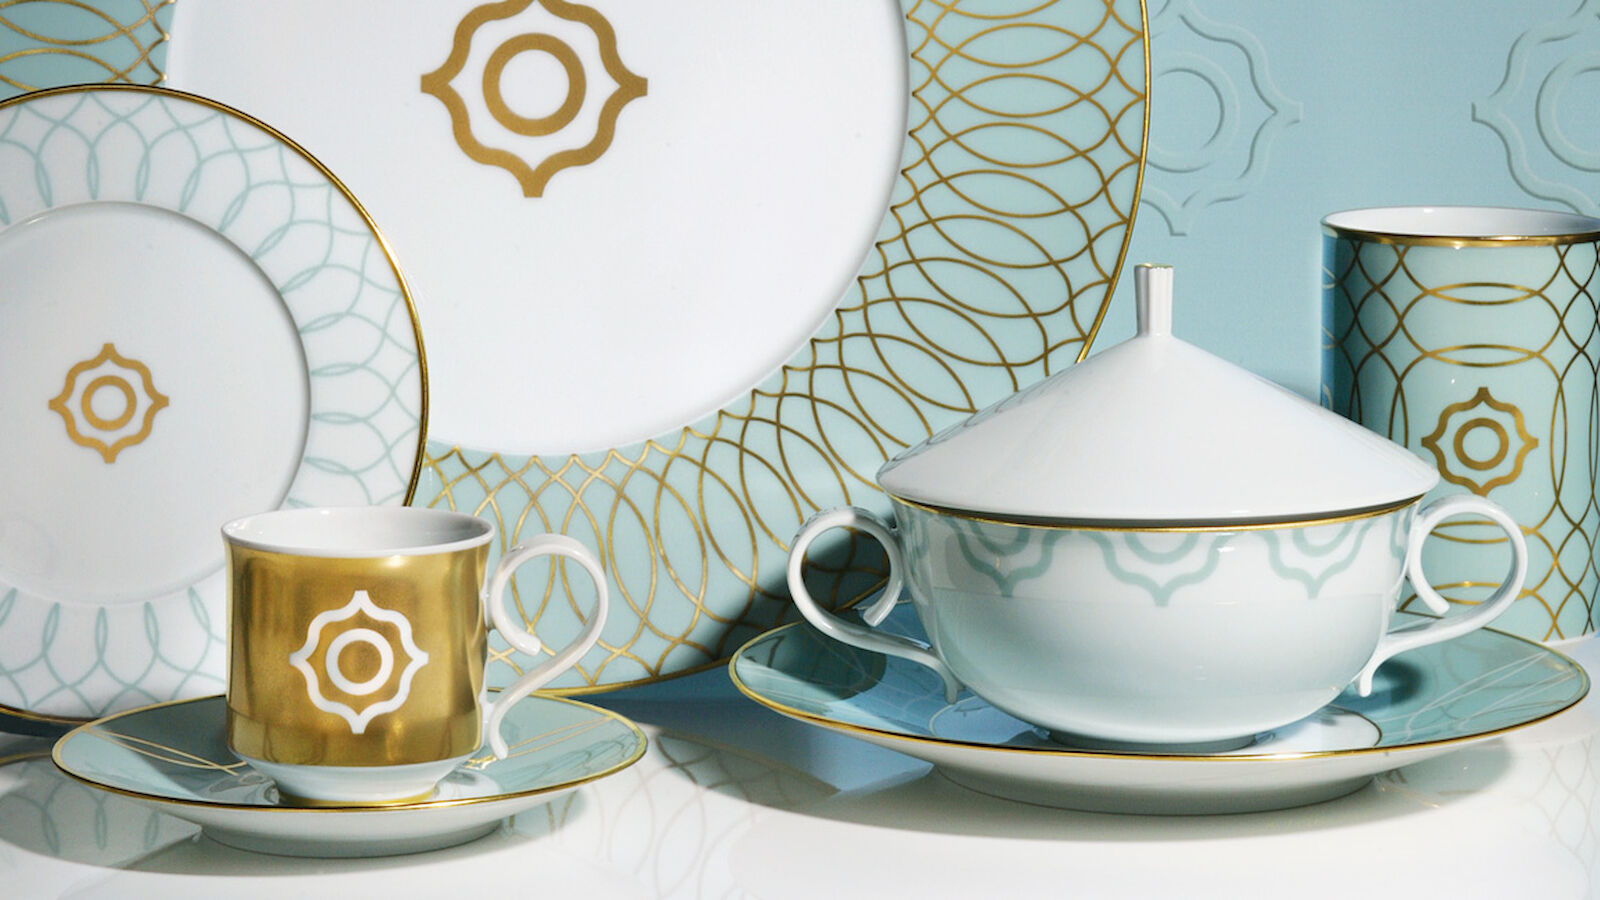 Design Management for the Carlo Dal Bianco dinner service from Fürstenberg